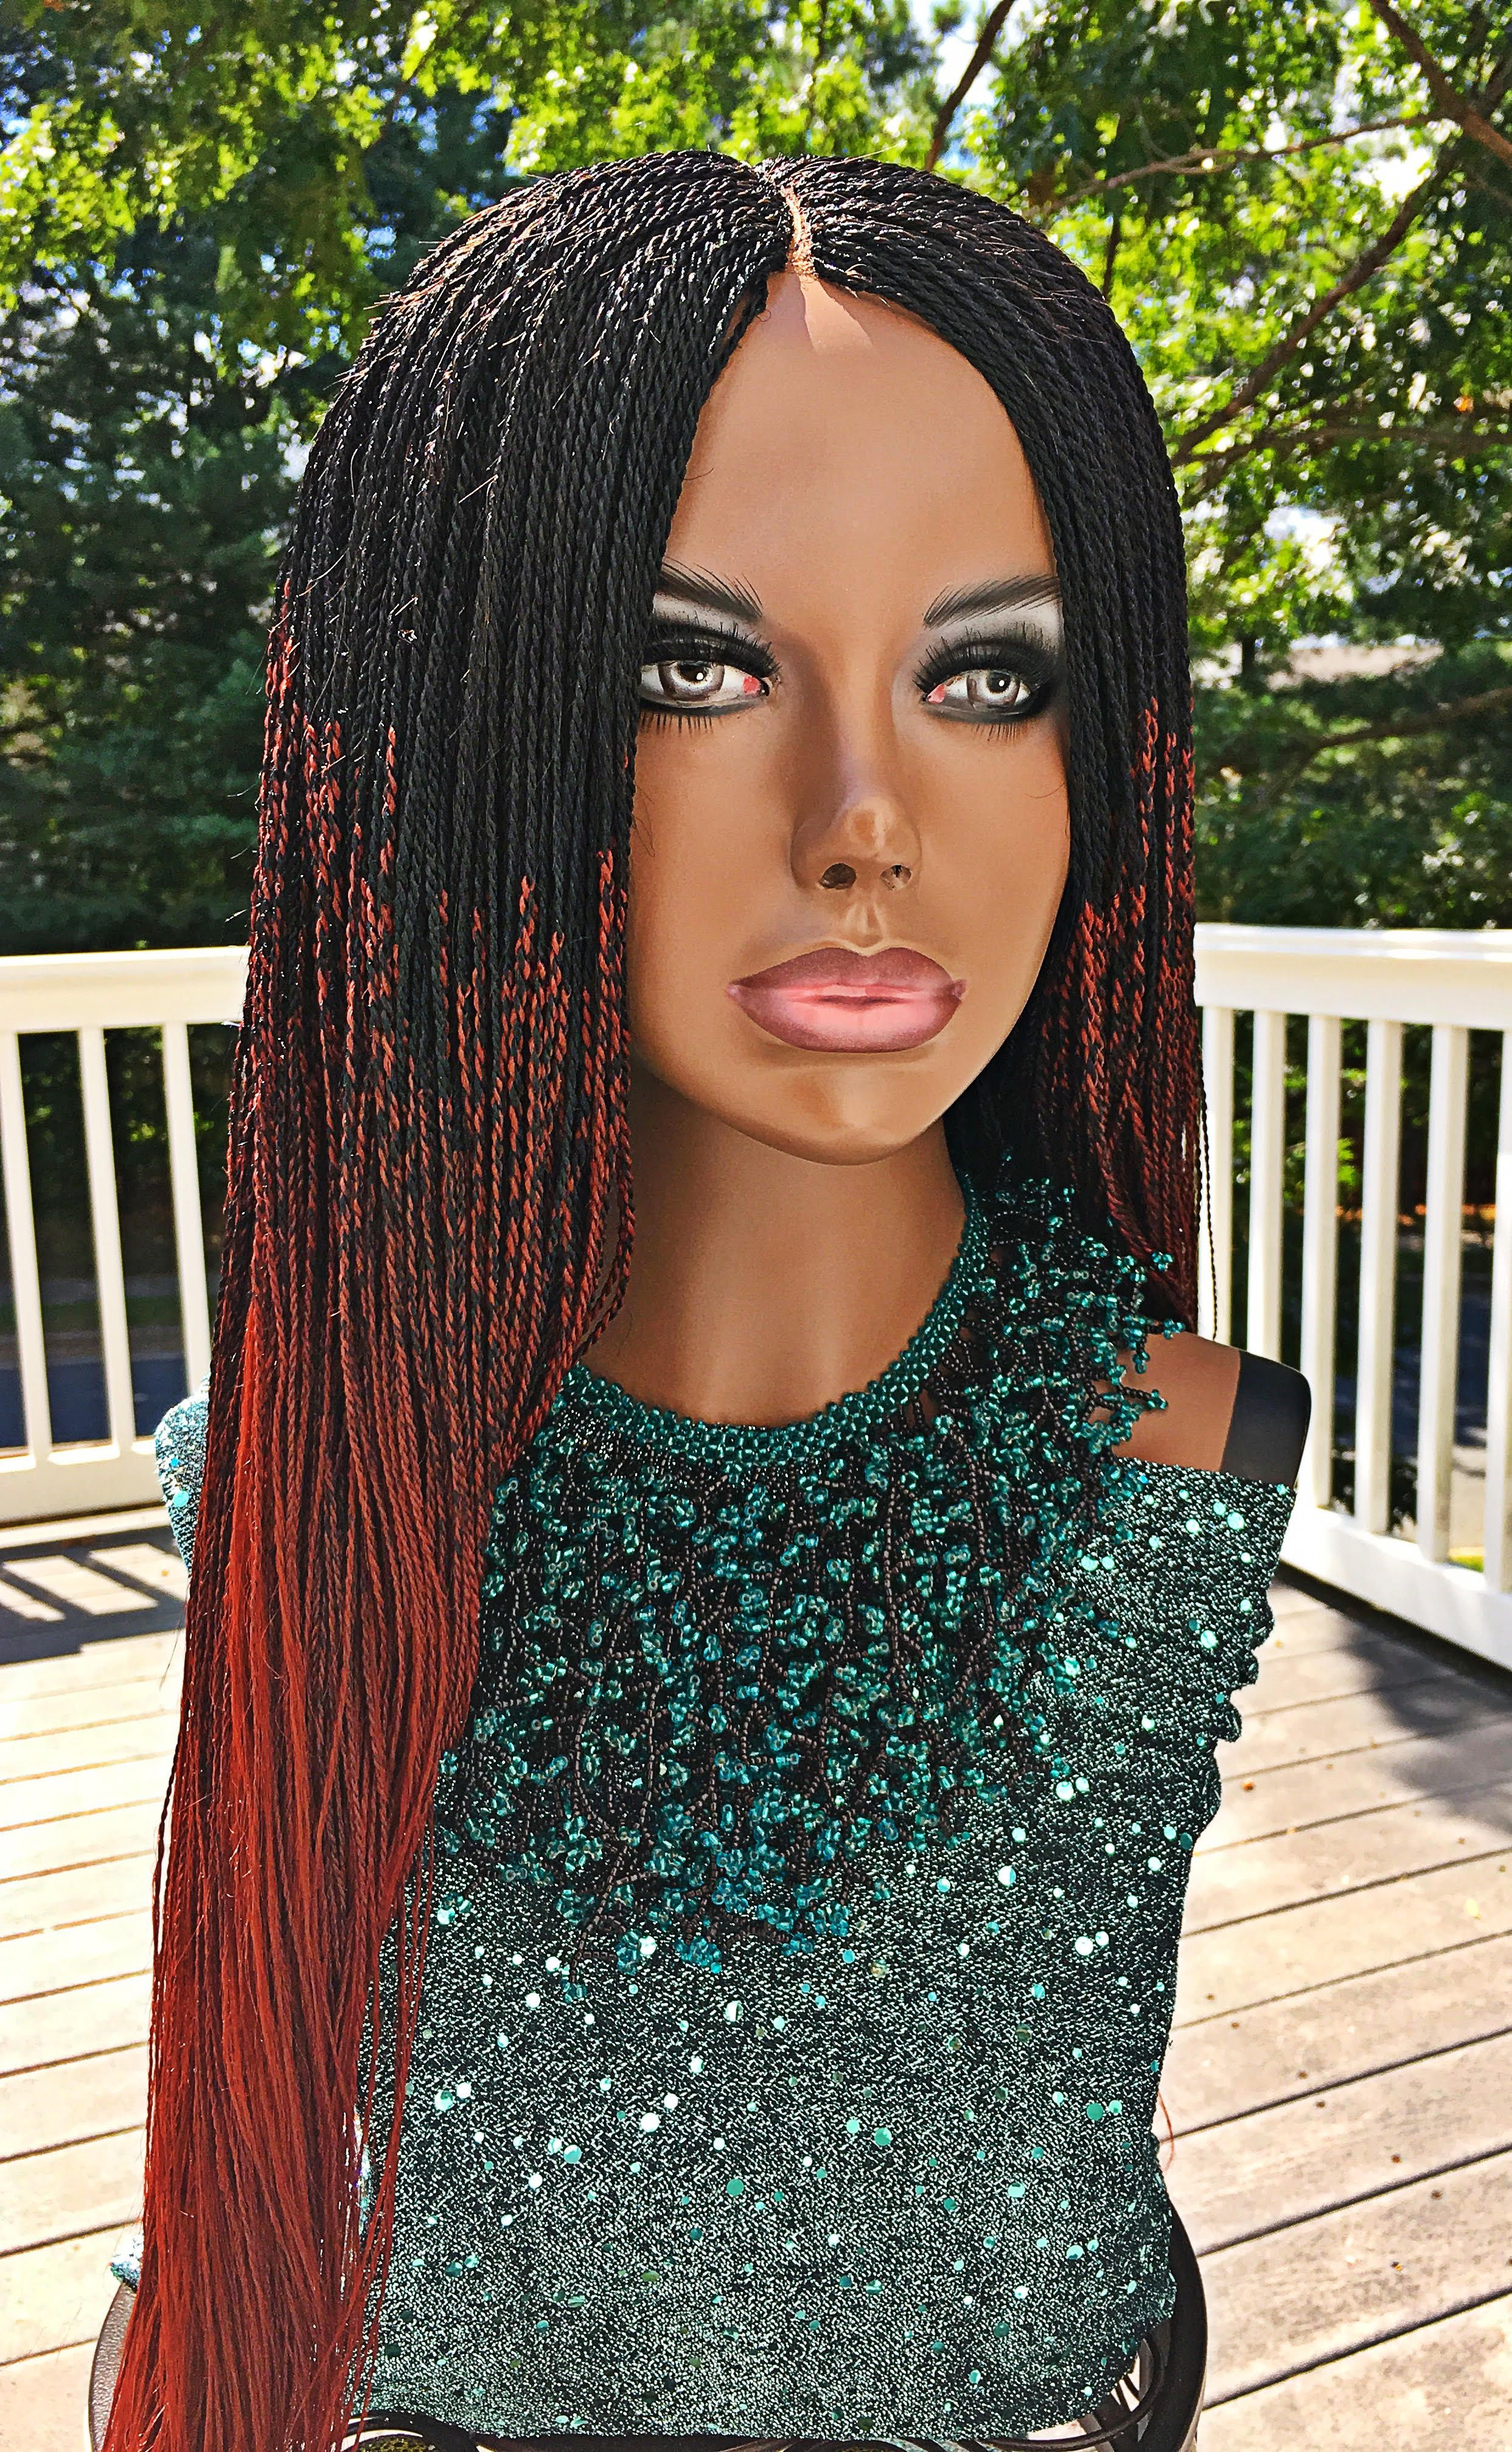 Beautiful Handmade Micro Twist Million Ombre Braided Wig Each Wig Is Hand Crafted By Stylist In Africa To Achieve Quality And Wigs Black Girl Braids Braids Wig